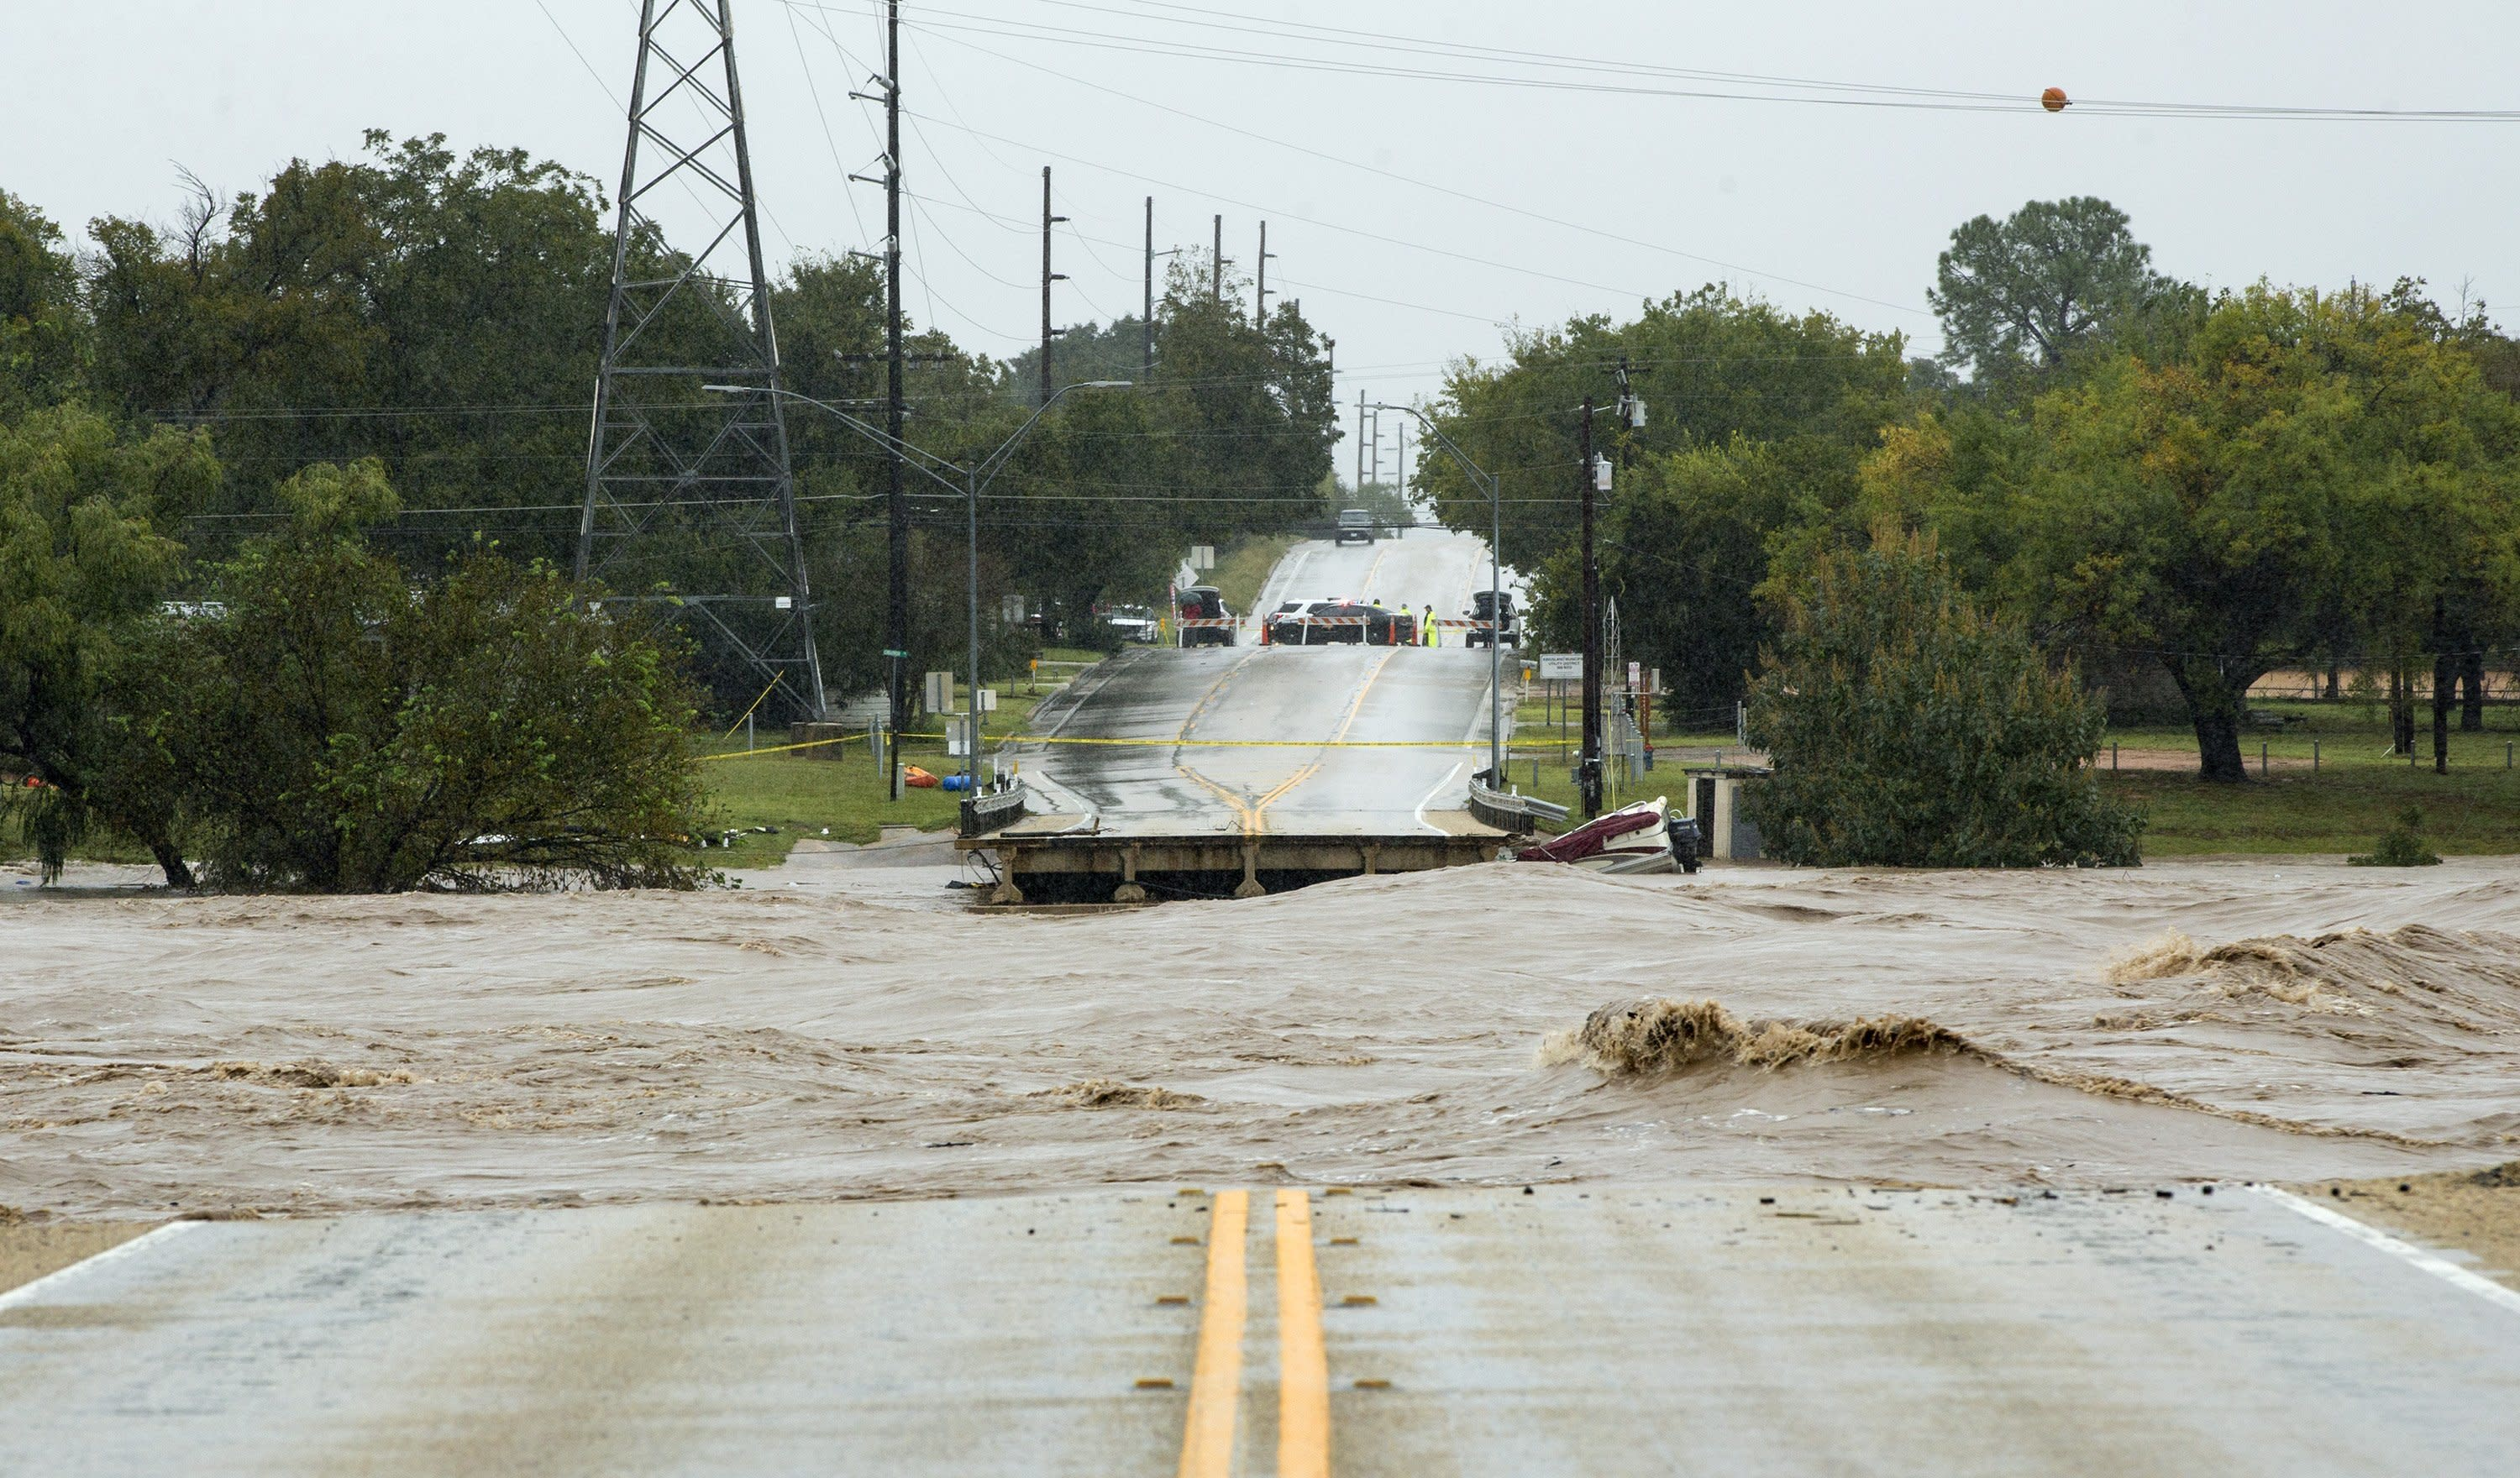 Floods destroy bridge, force evacuations in Central Texas